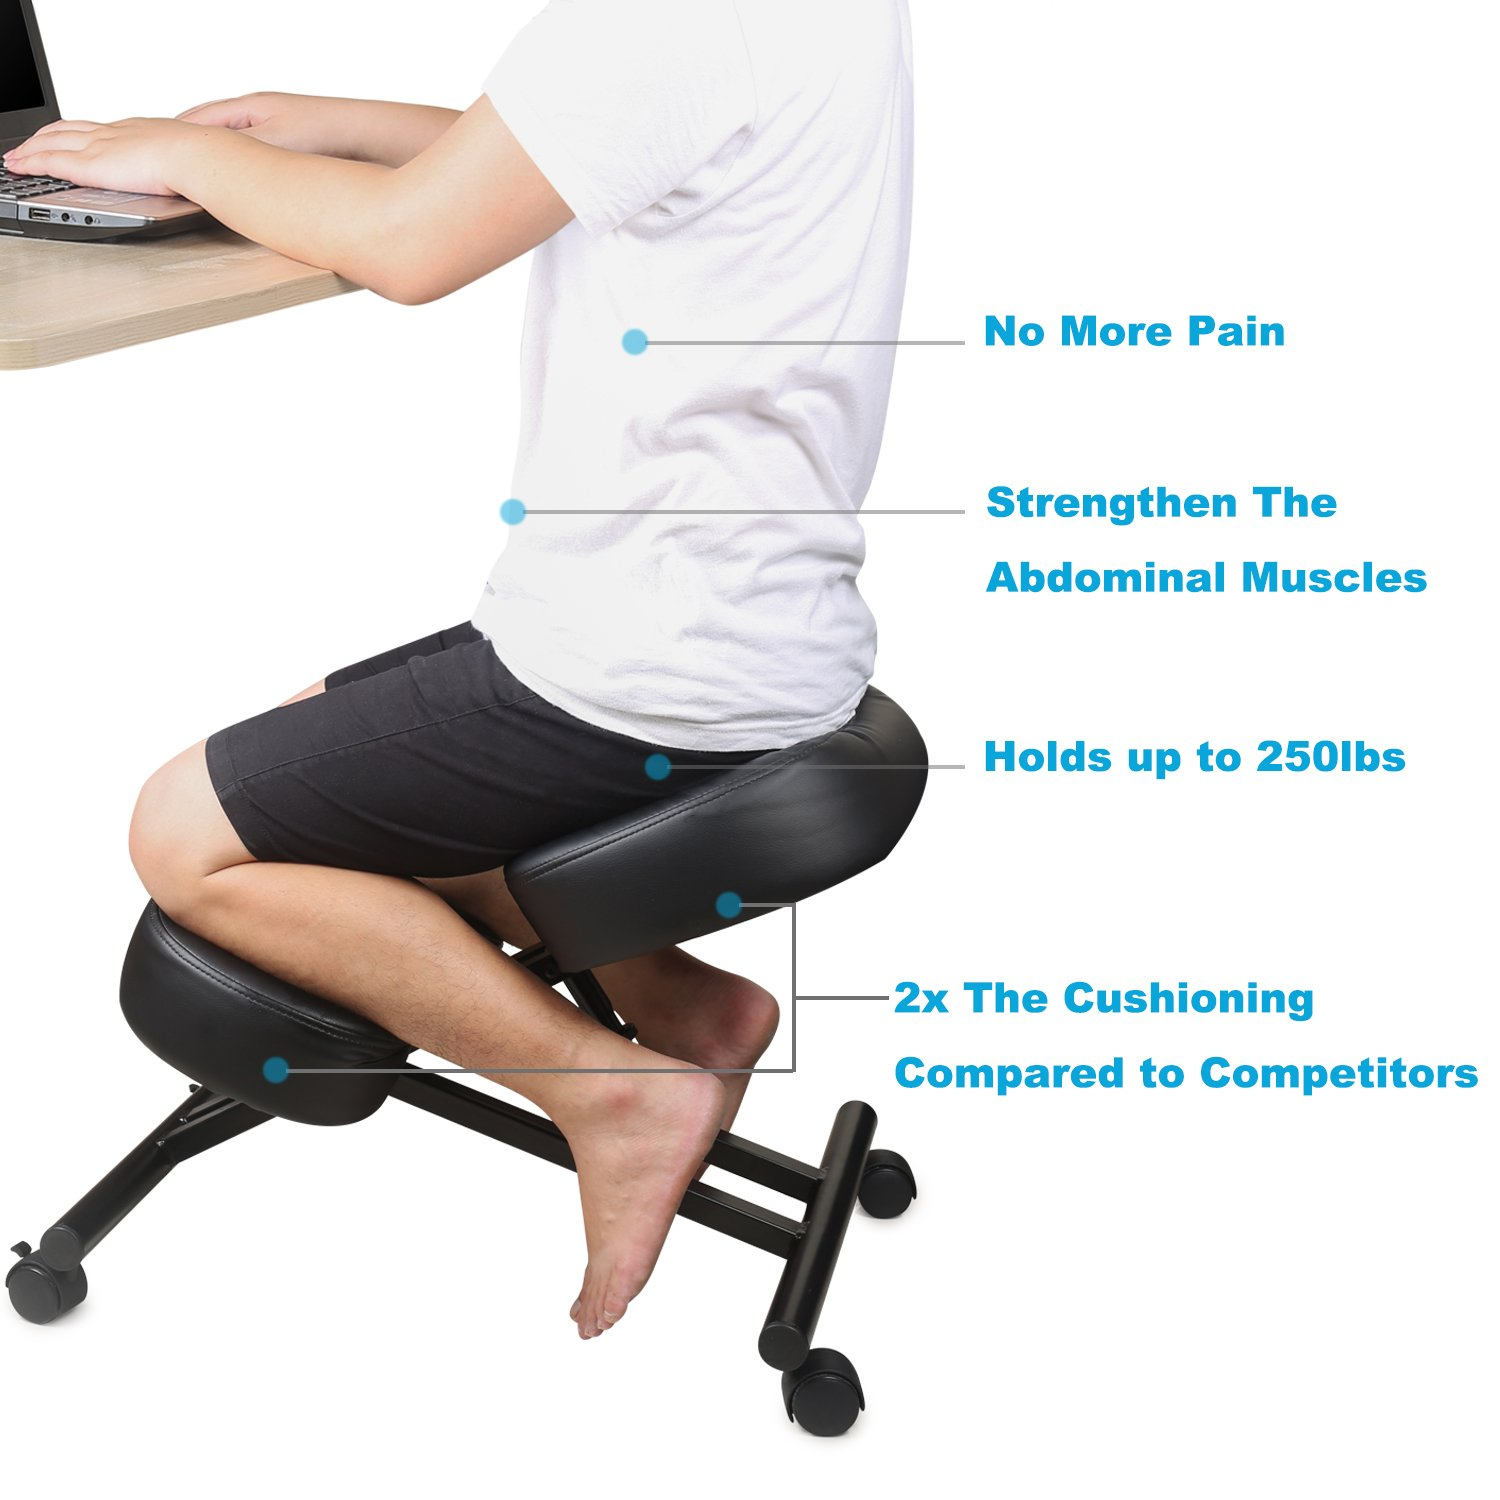 DRAGONN Ergonomic Kneeling Chair, Adjustable Stool for Home and Office – Improve Your Posture with an Angled Seat – Thick Comfortable Cushions